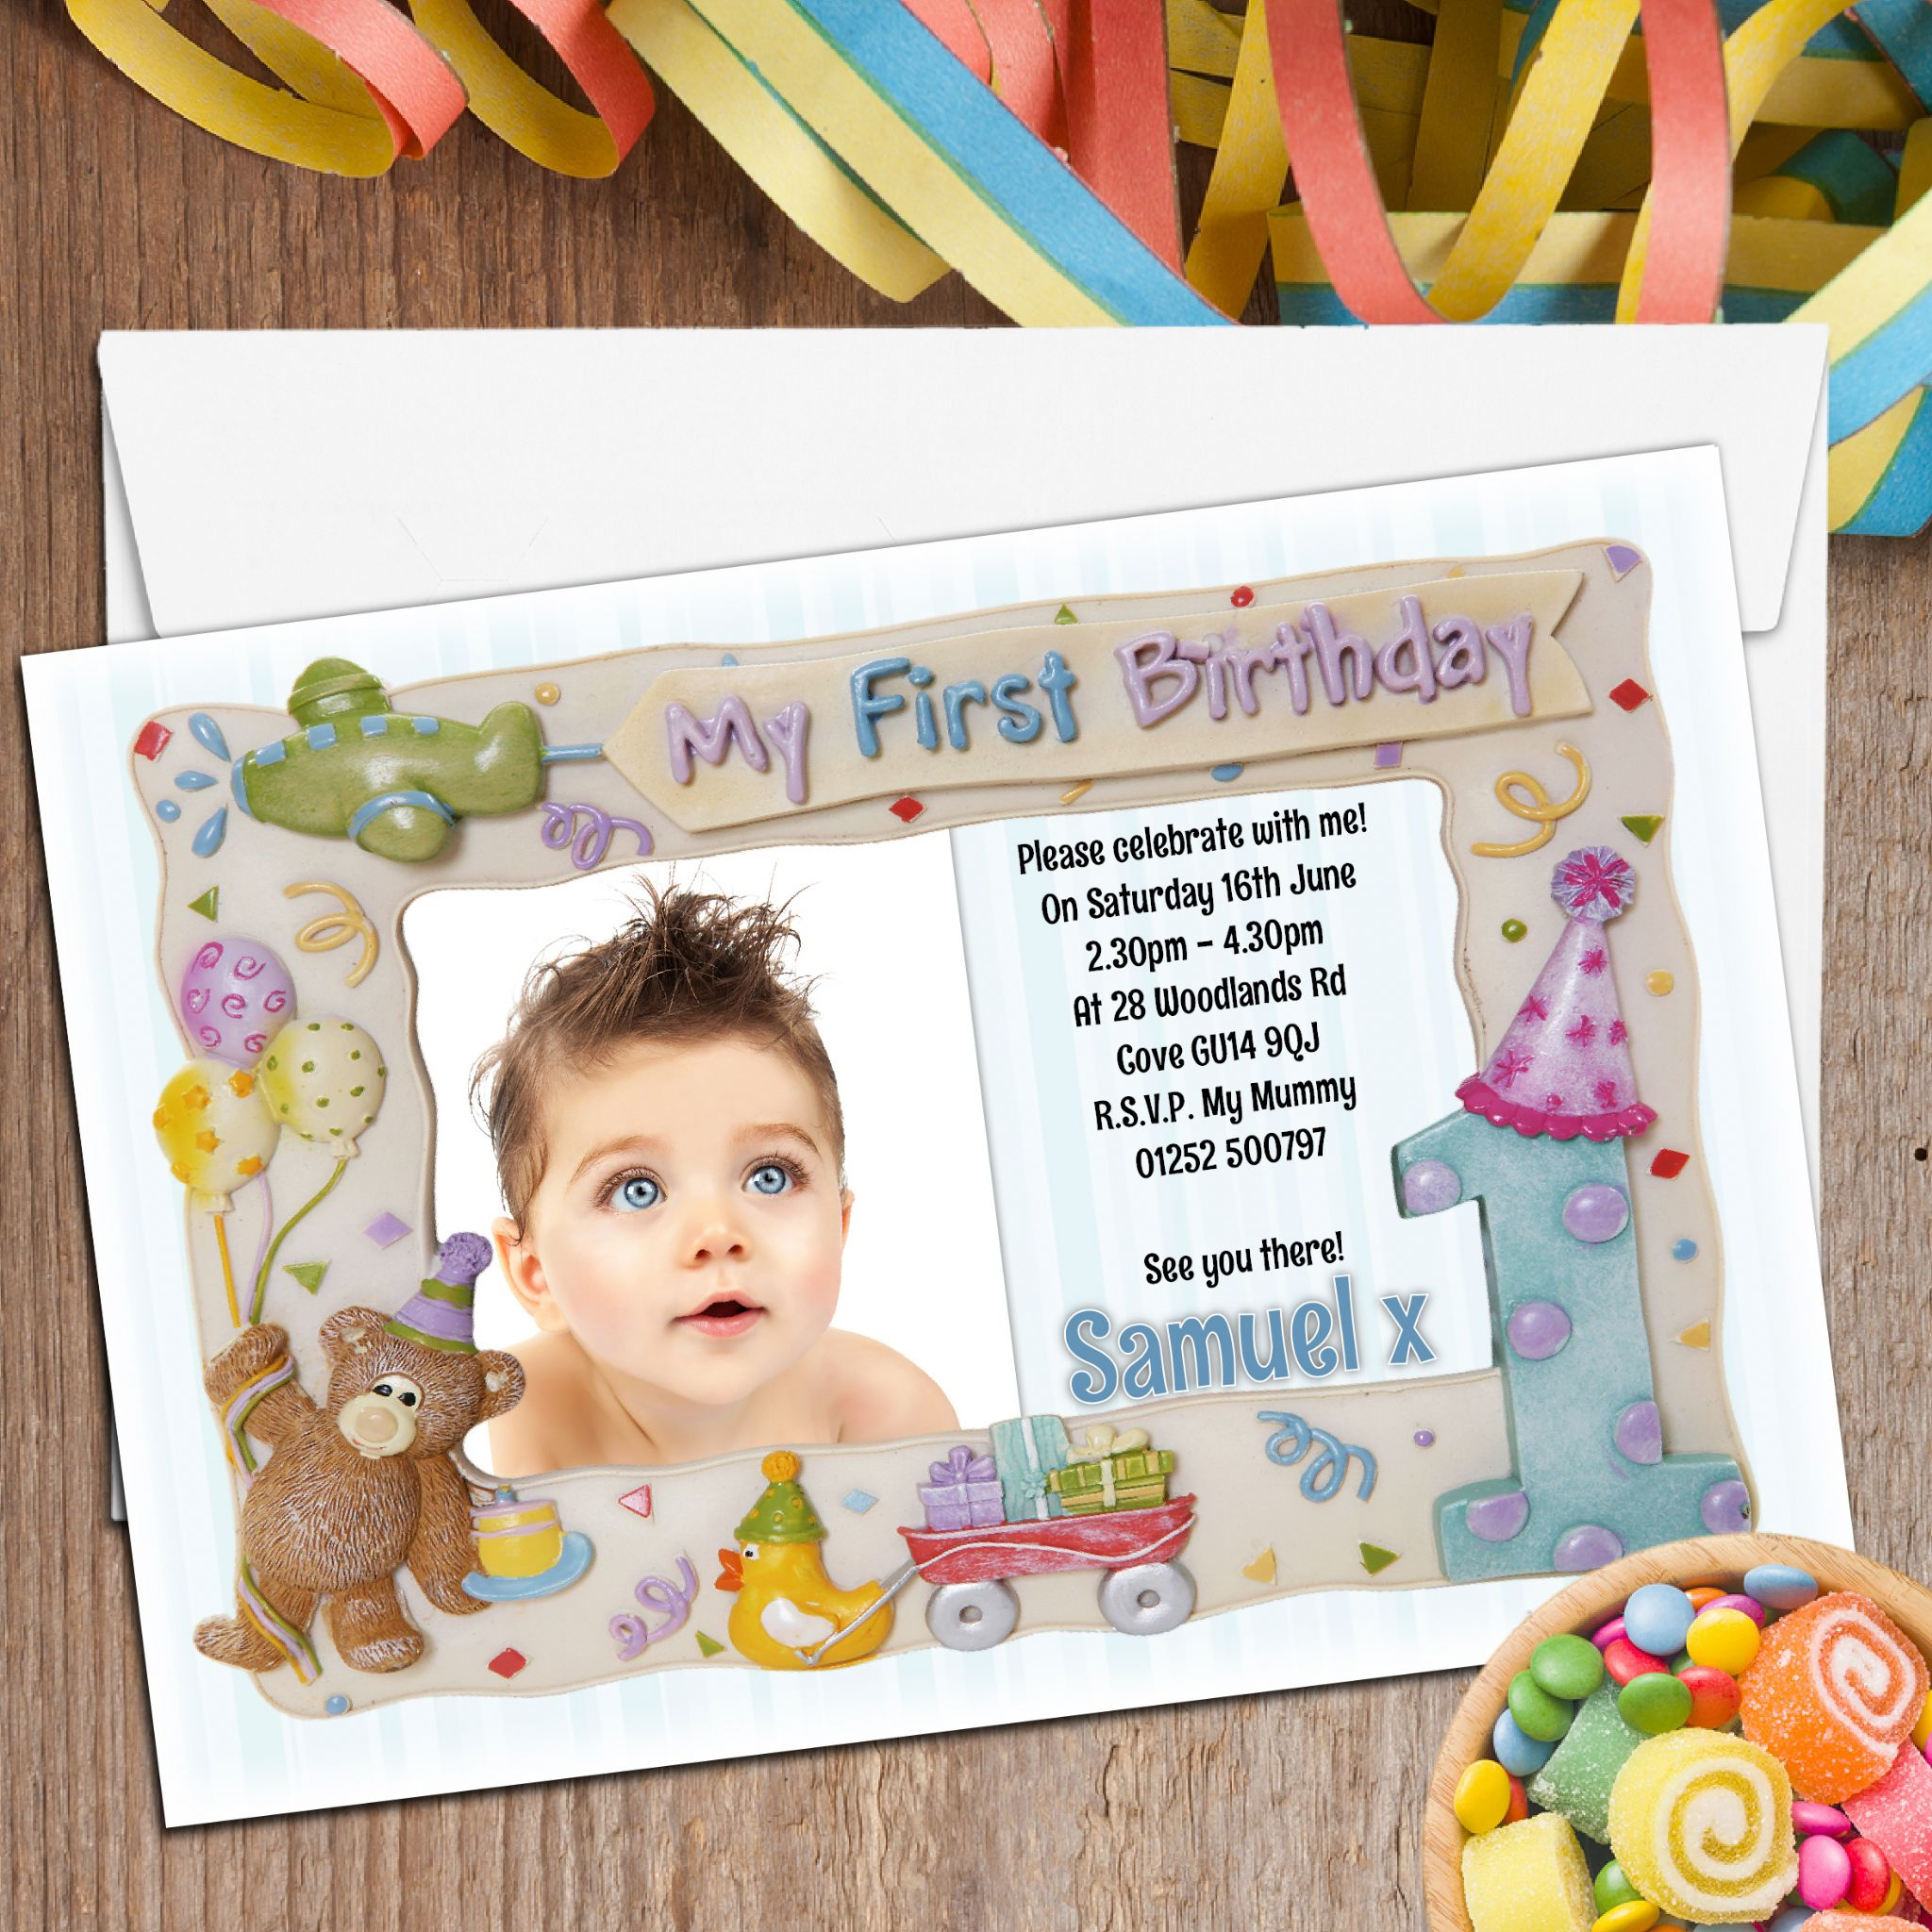 10 Personalised First 1st Birthday Party Frame Photo Invitations N2